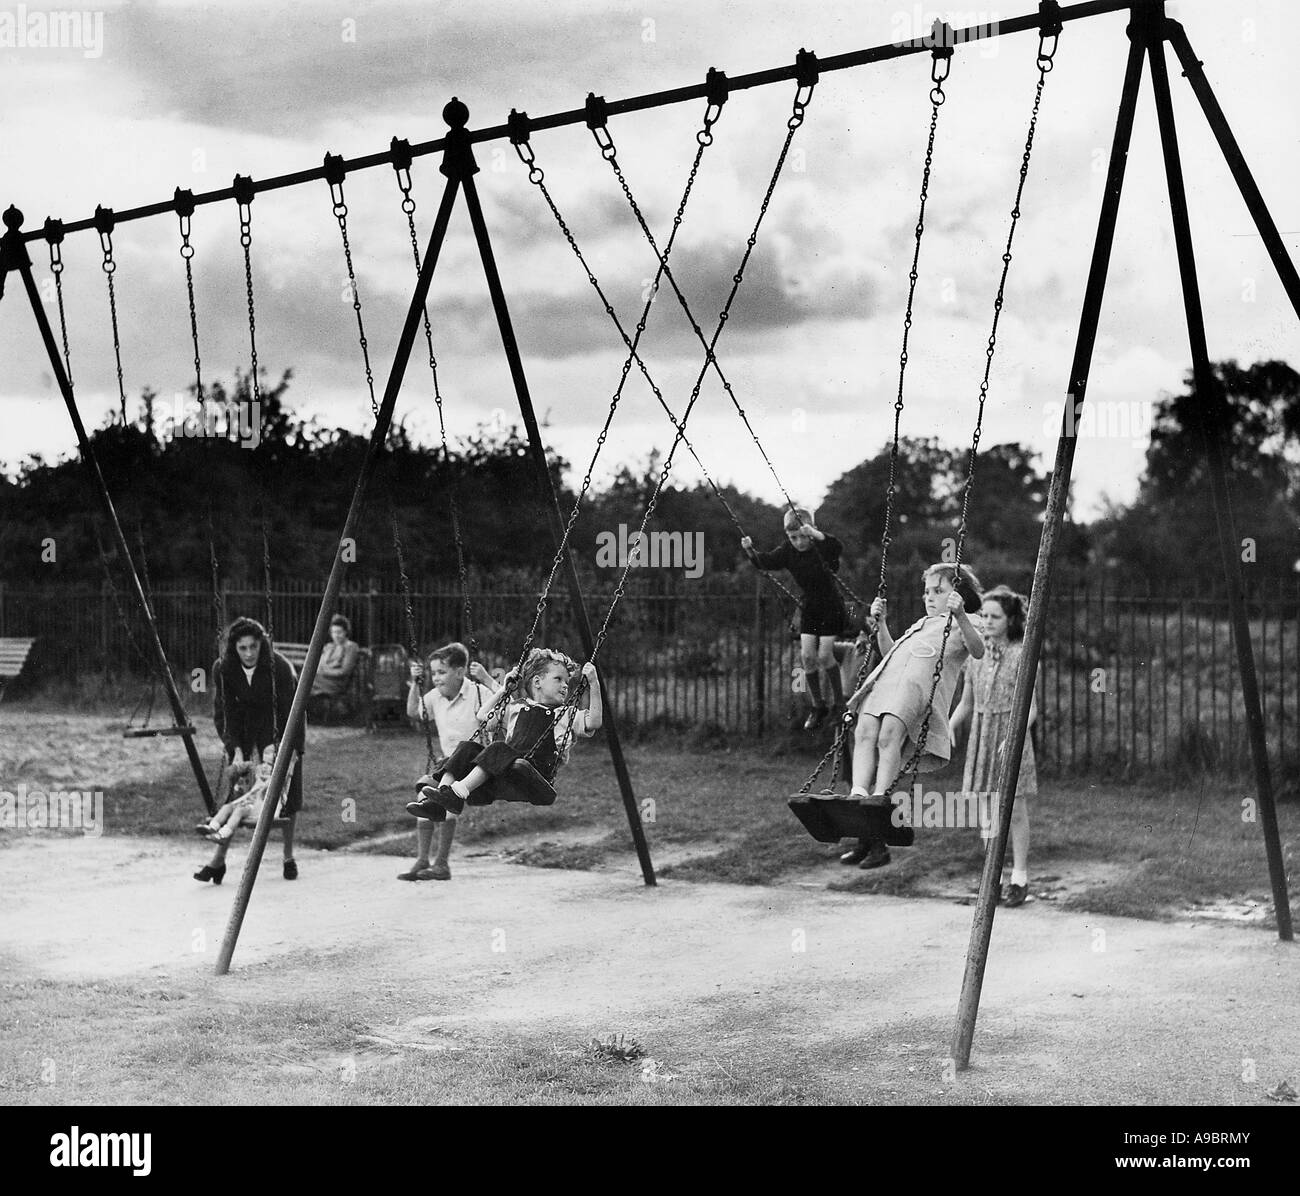 CHILDREN ON SWINGS in 1943- these are evacuees from London - Stock Image